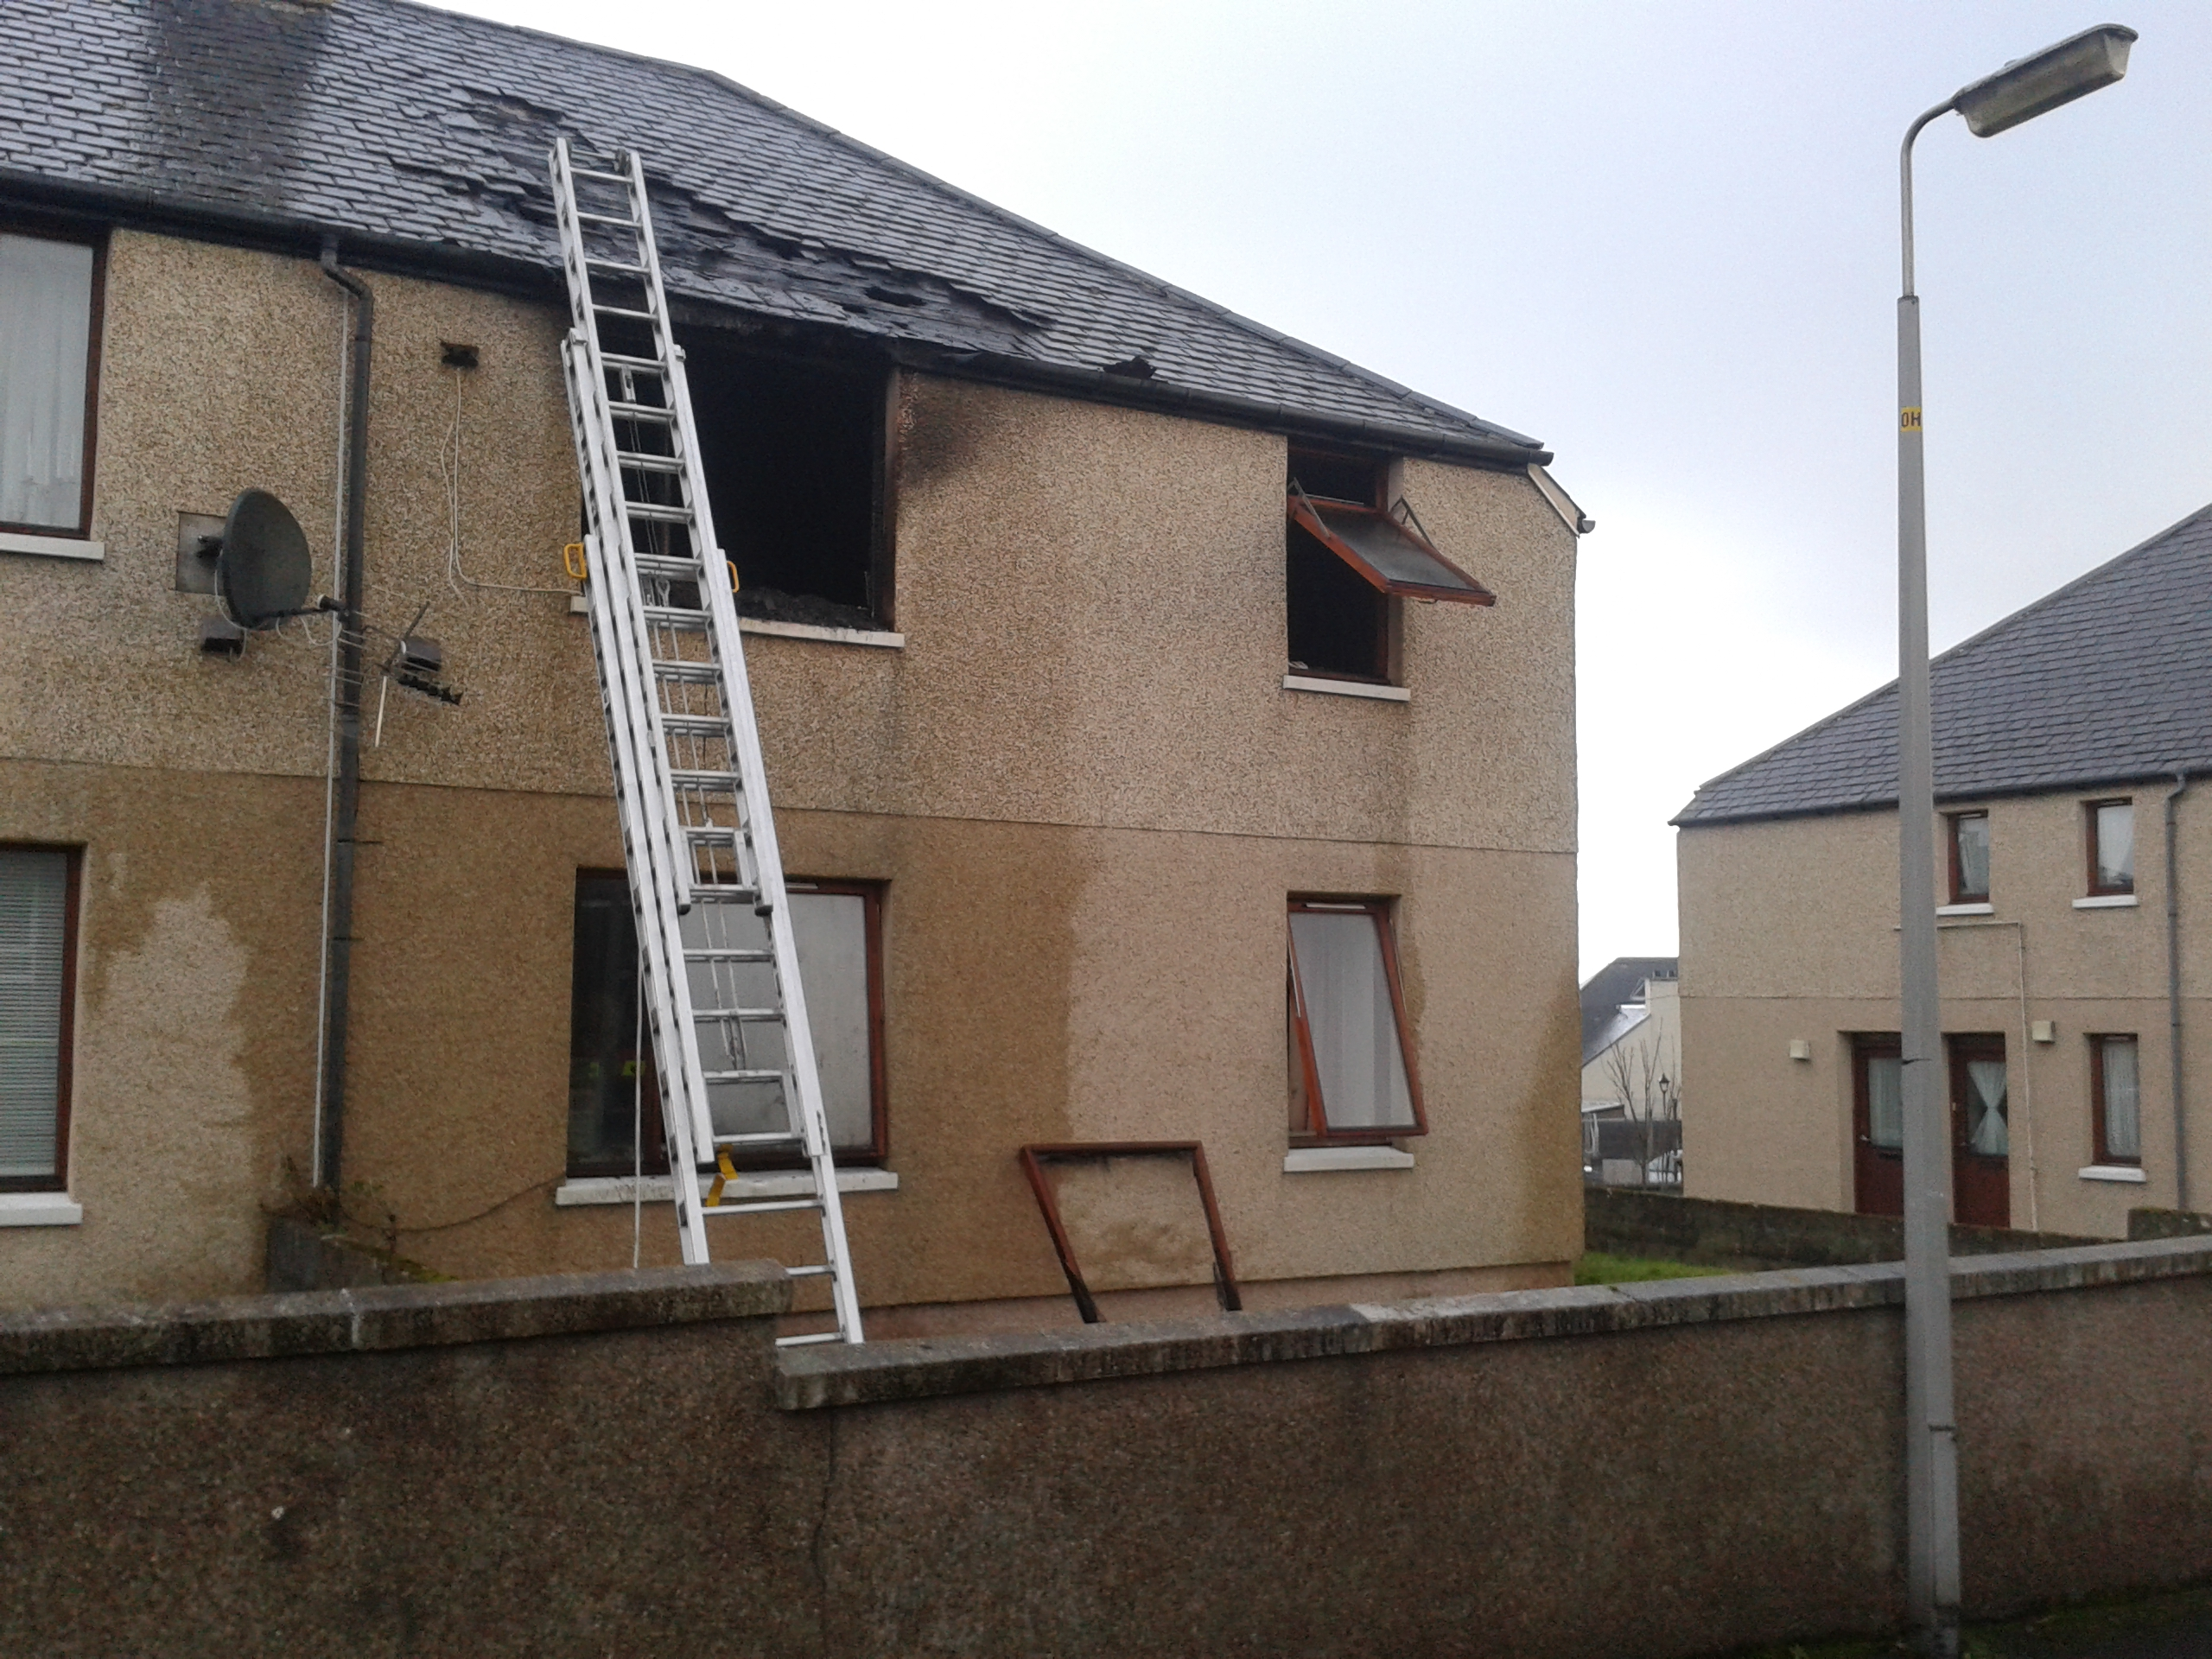 House fire in Thurso